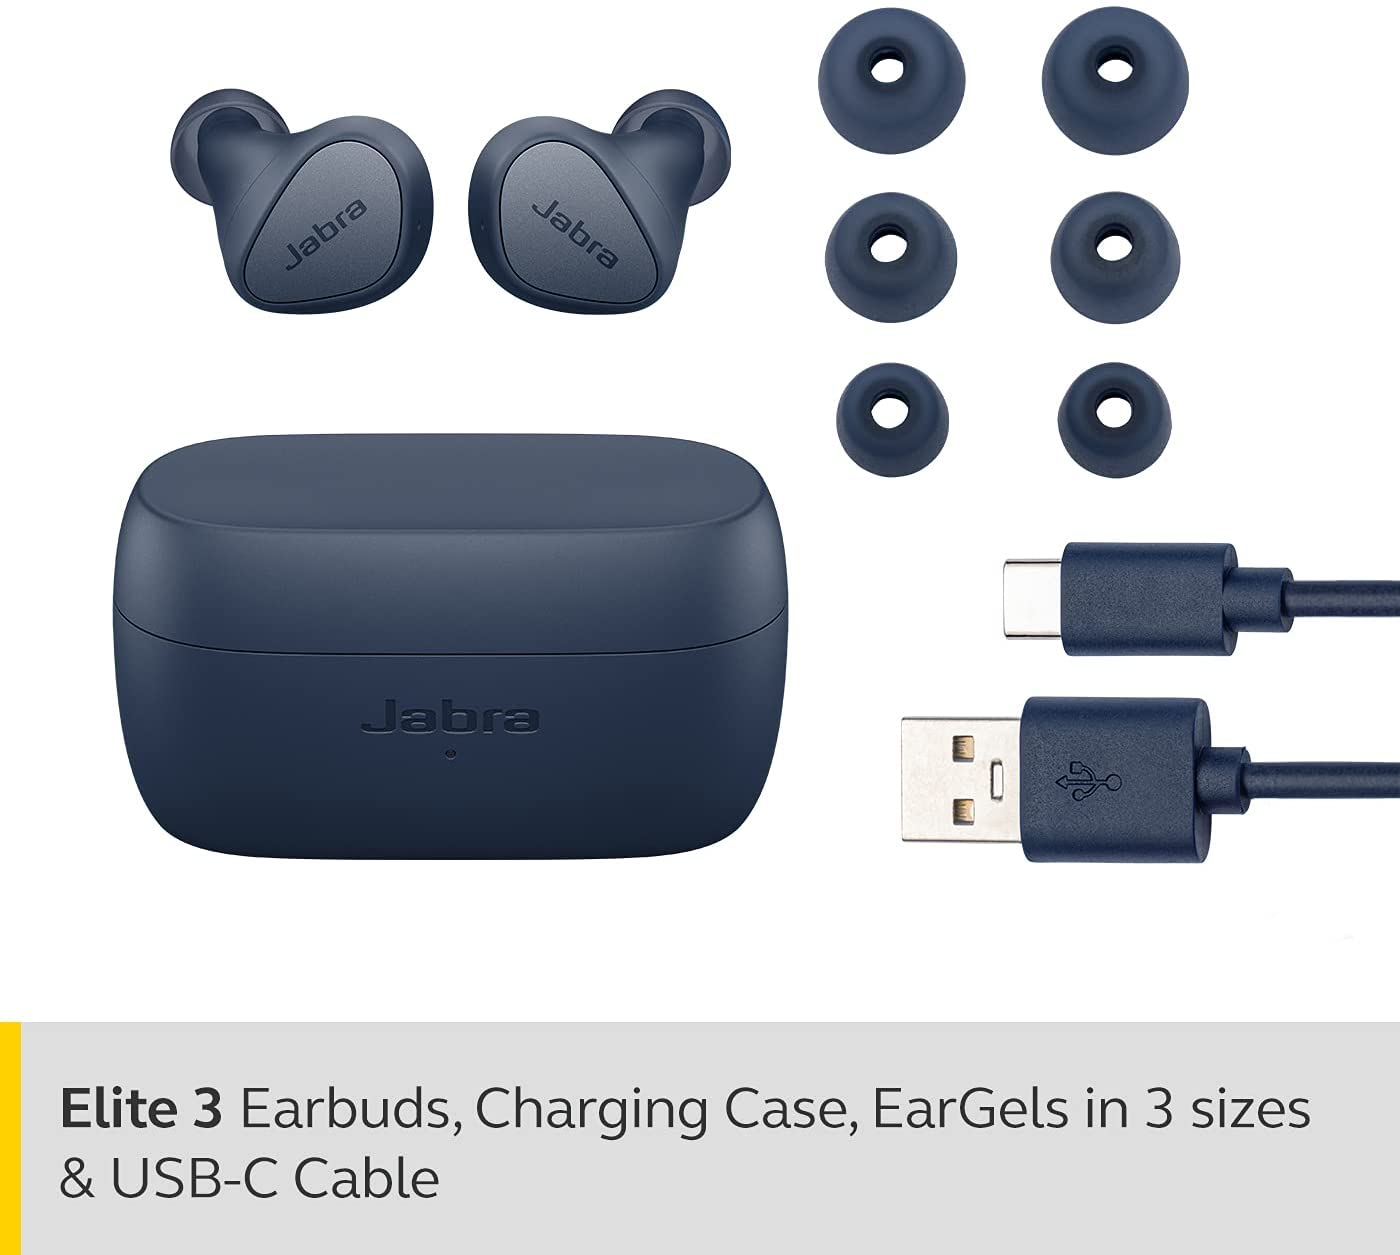 Jabra Elite 3 In Ear Wireless Bluetooth Earbuds – Noise isolating True Wireless buds with 4 built-in Microphones for Clear Calls, Rich Bass, Customizable Sound, and Mono Mode - Navy